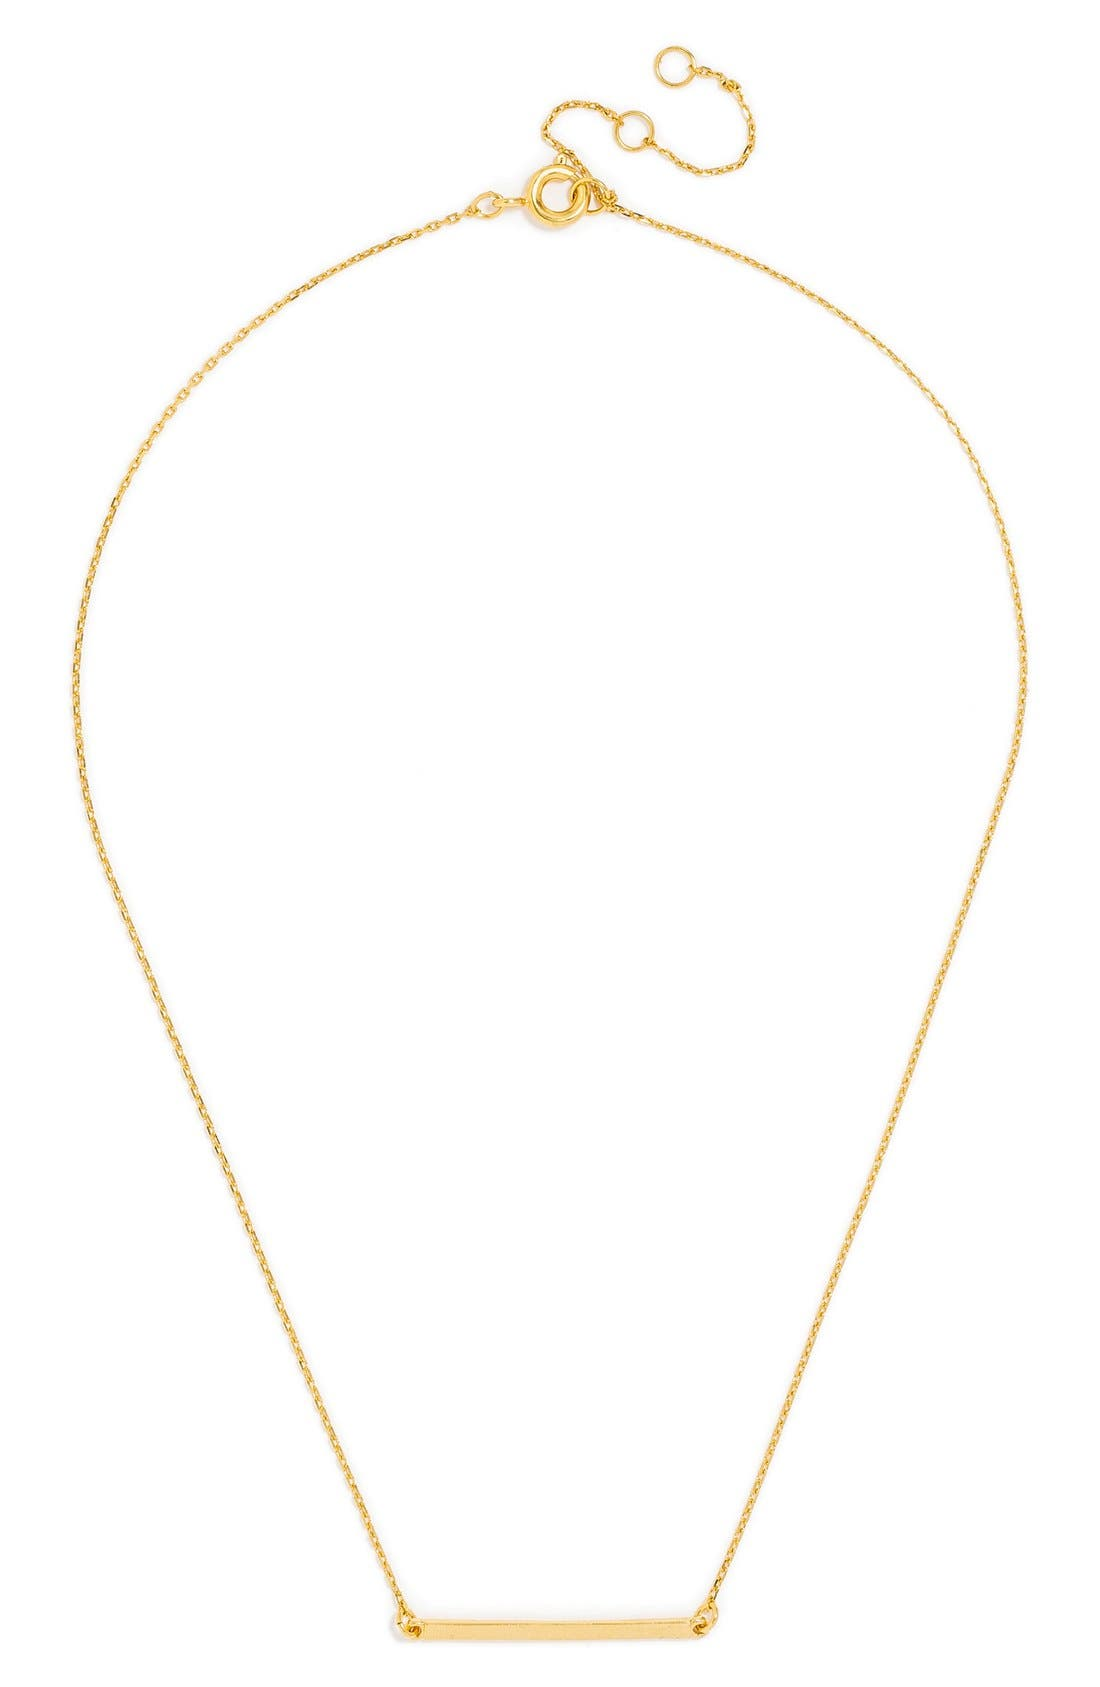 Main Image - BaubleBar Solid Bar Pendant Necklace